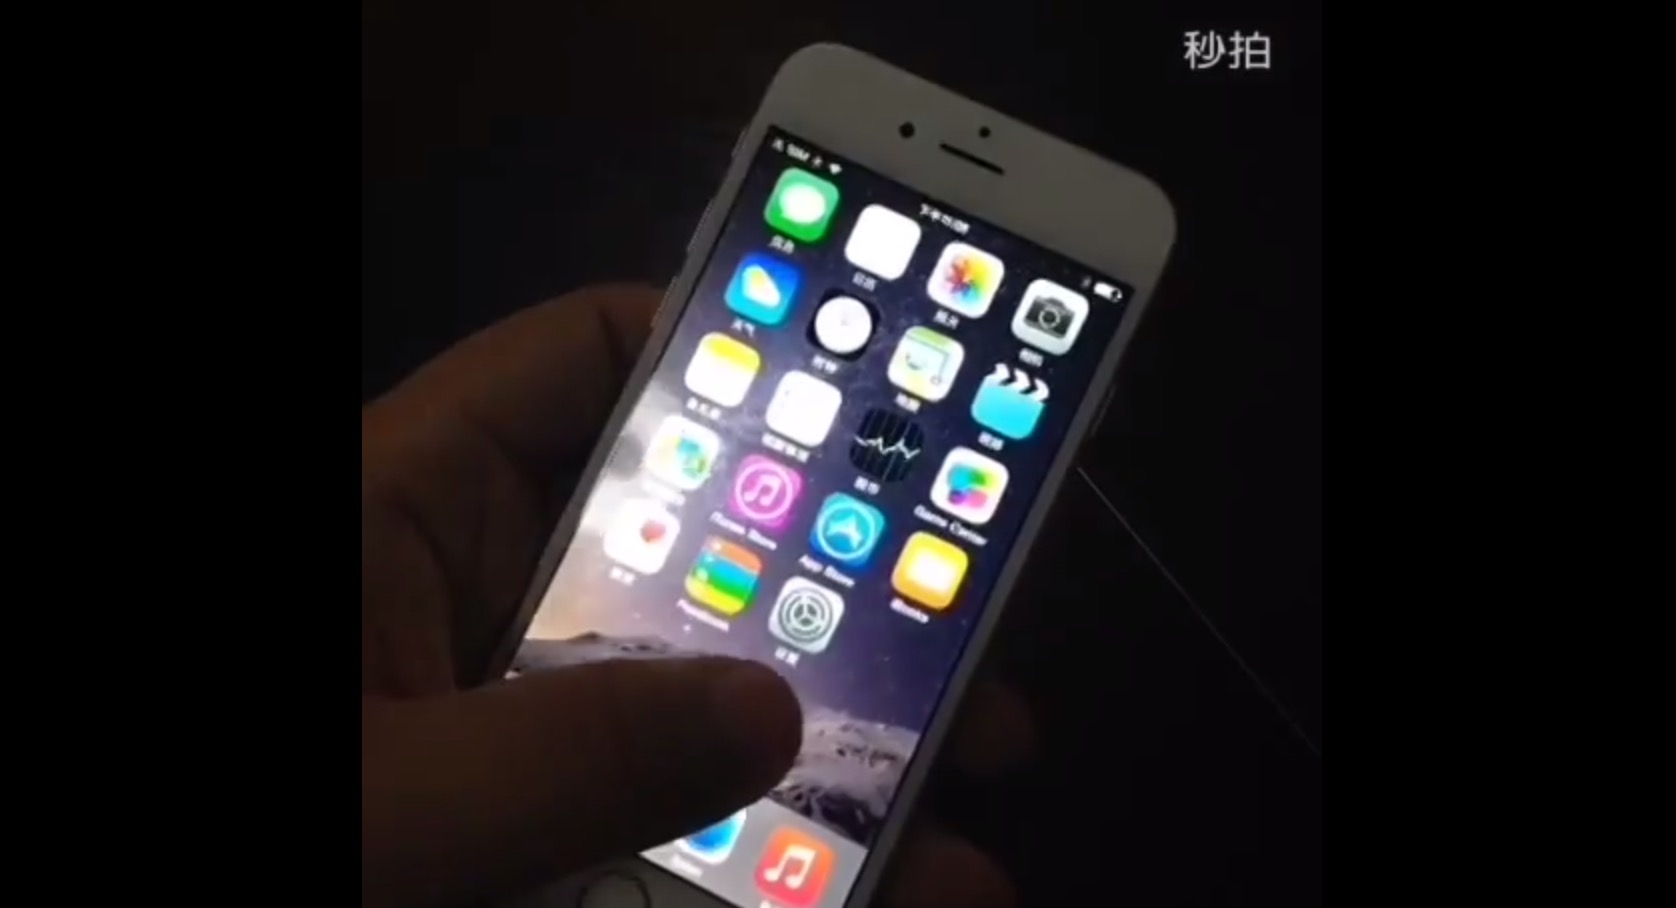 iphone 6 in action